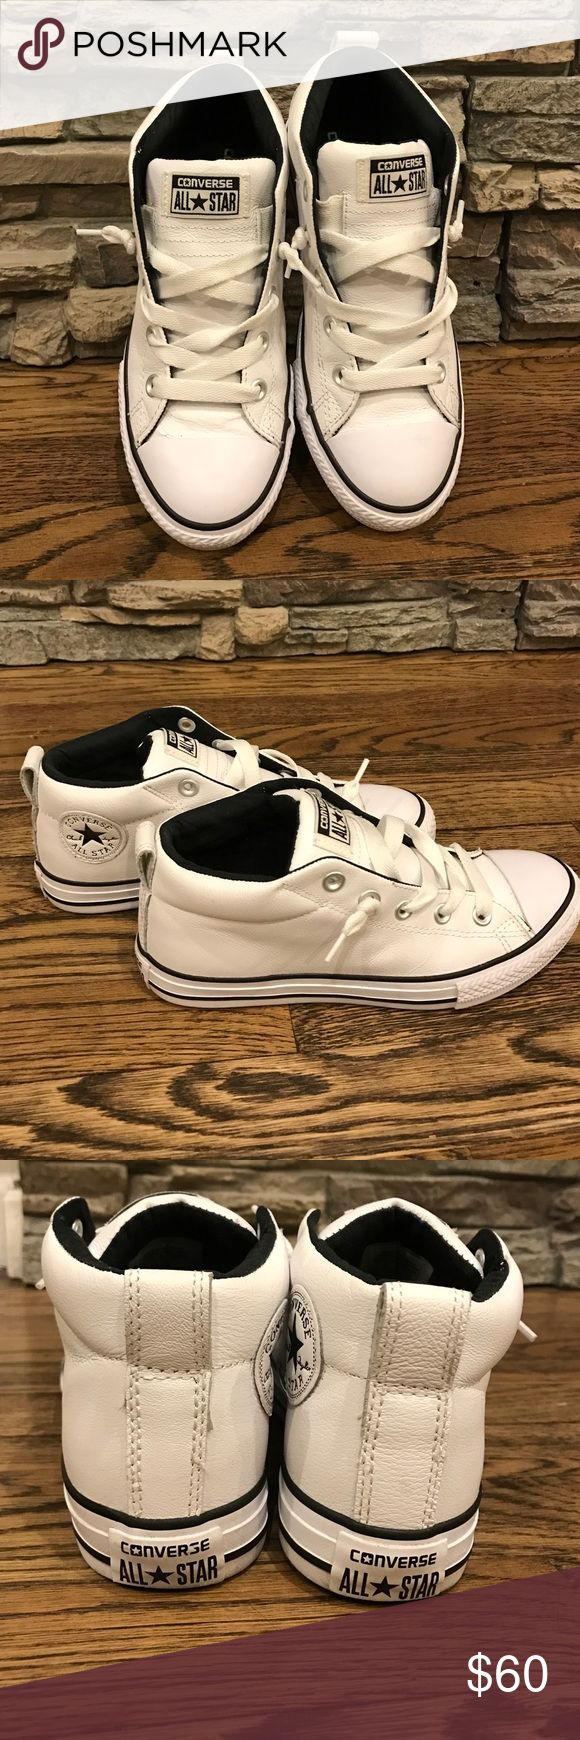 White leather converse size 4 kids 7 adults White leather half tops. Lace up. Perfect condition like brand new. These are kids 4 but I'm a size 7 and I fit into them. I no longer have a box Converse Shoes Sneakers